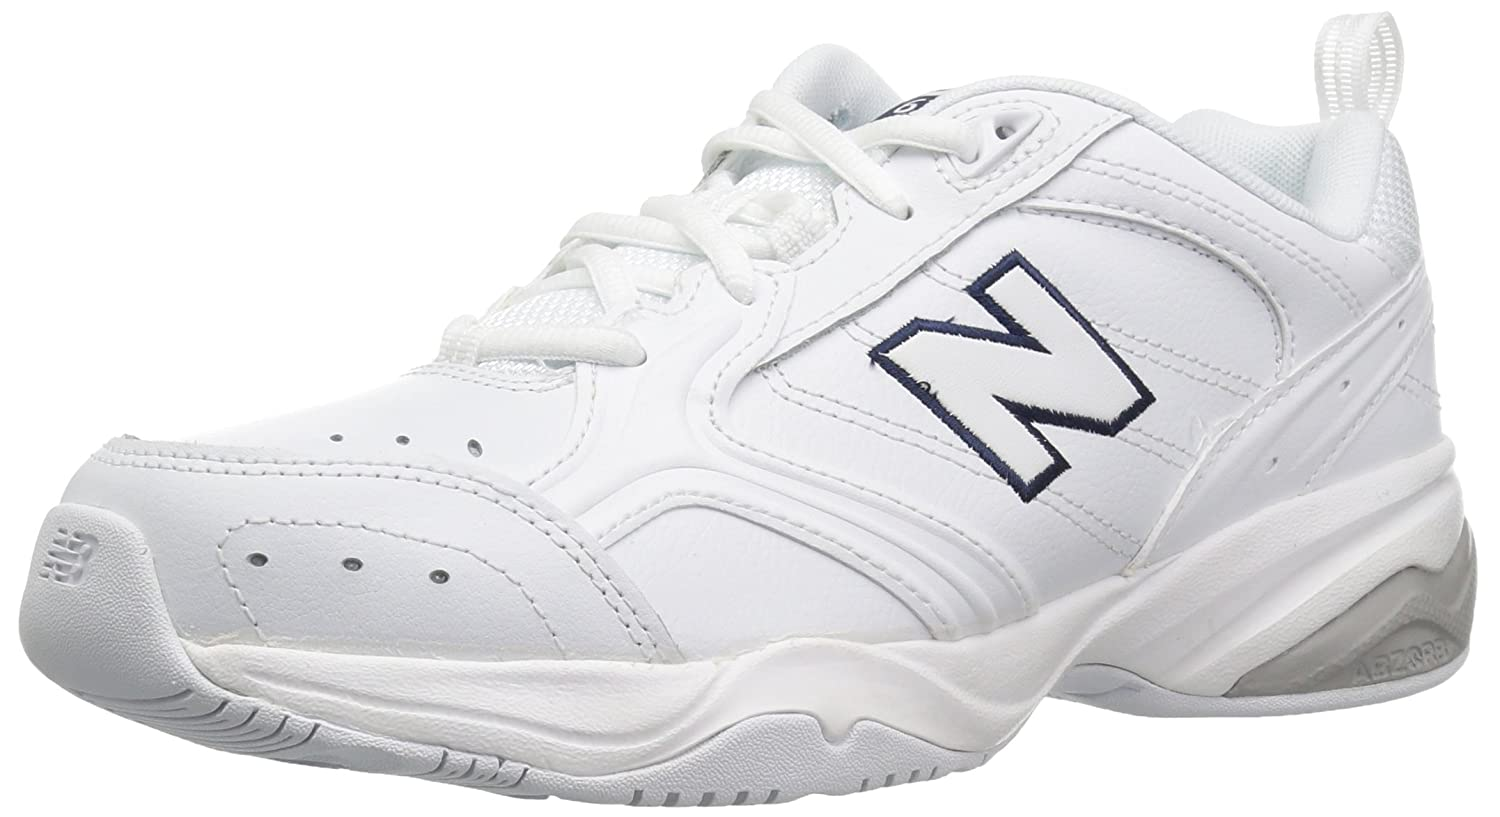 New Balance Women's WX624v2 Training Shoe B007OWZS3Q 10 B(M) US|White